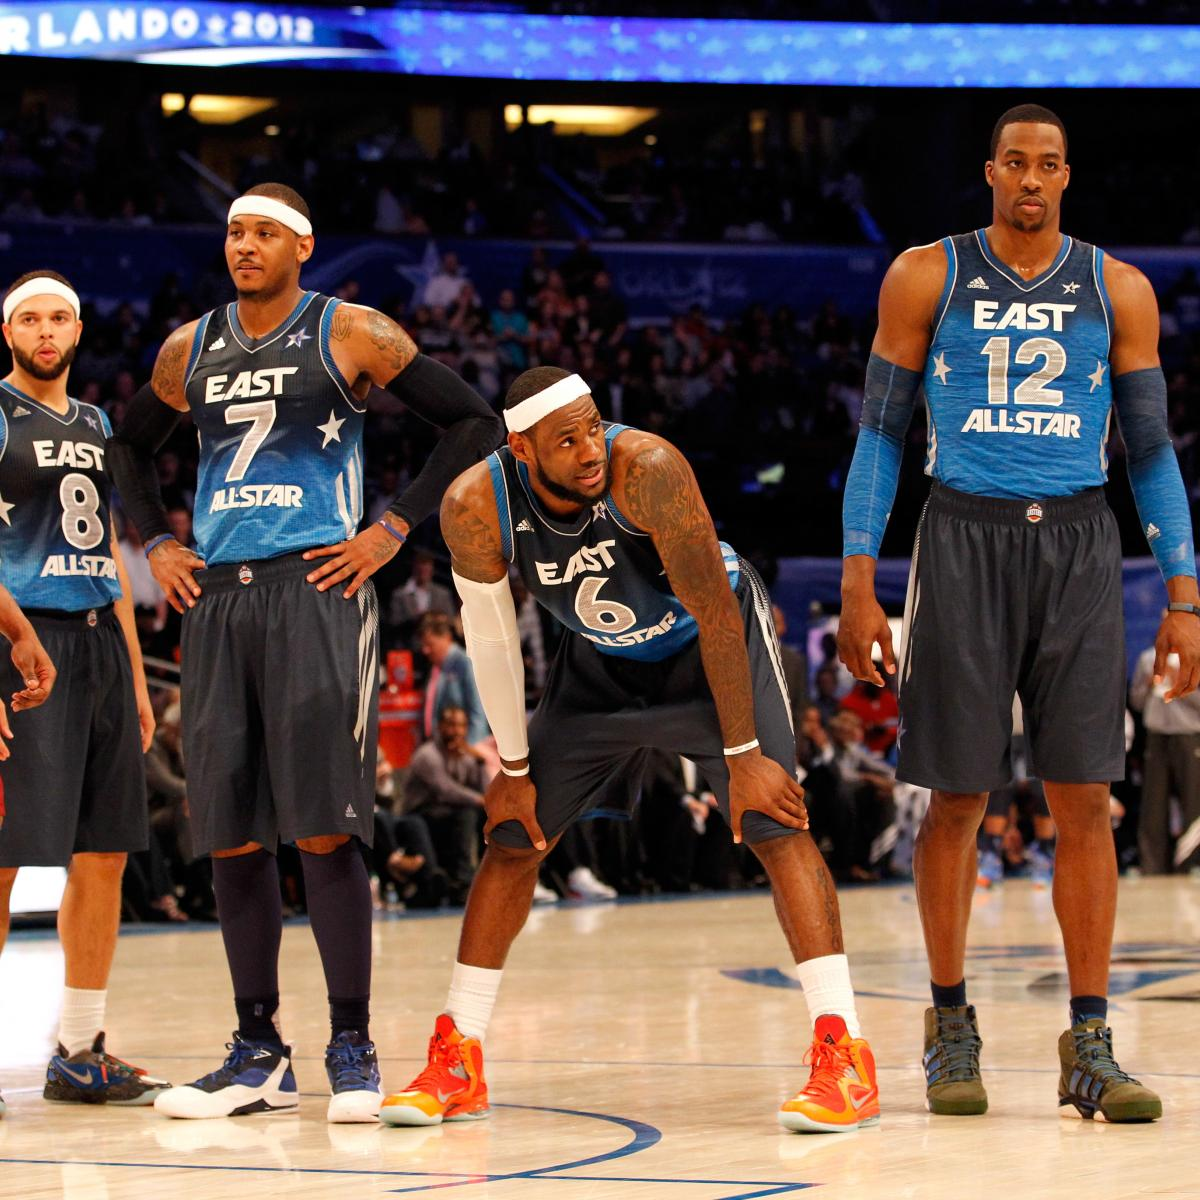 30afff78f770 Very Early Predictions for the 2013 NBA All-Star Game Rosters ...